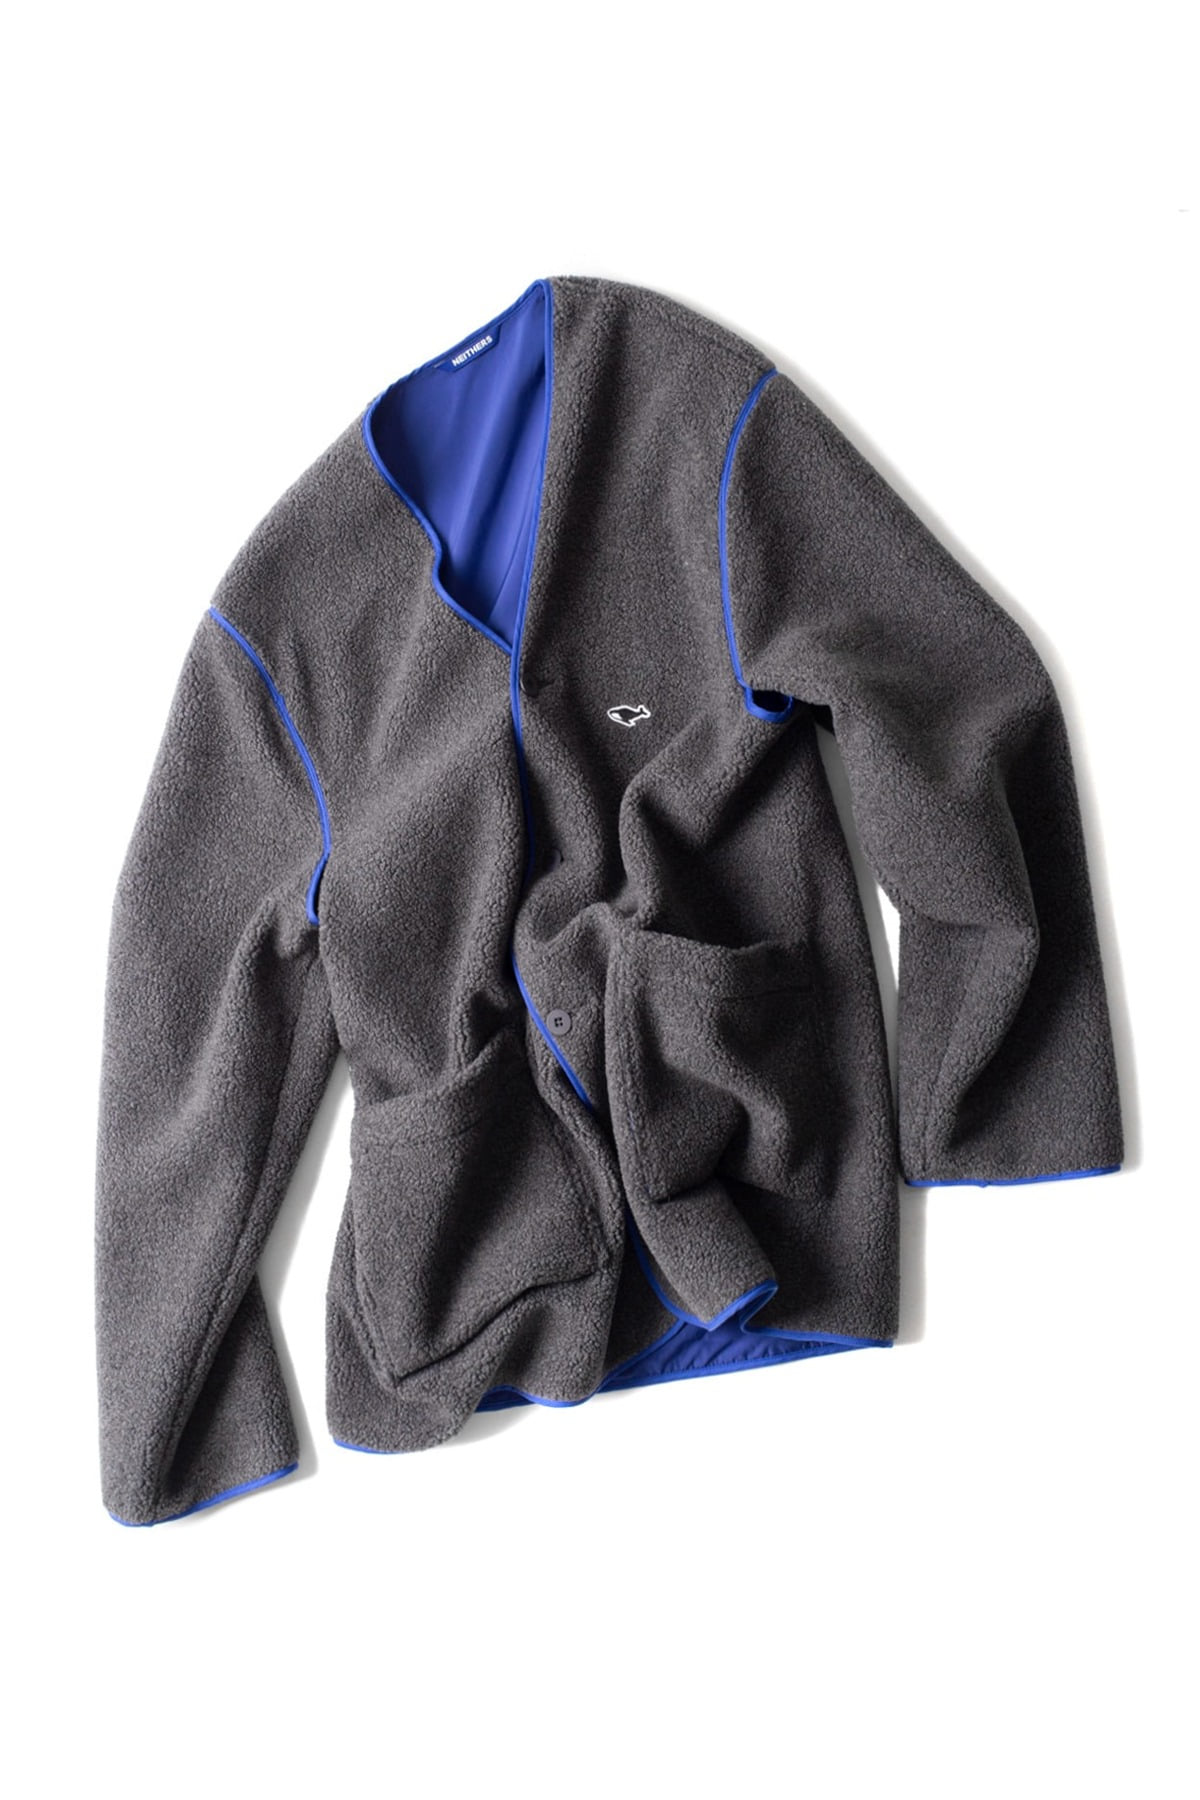 NEITHERS : Liner Jacket (Grey)